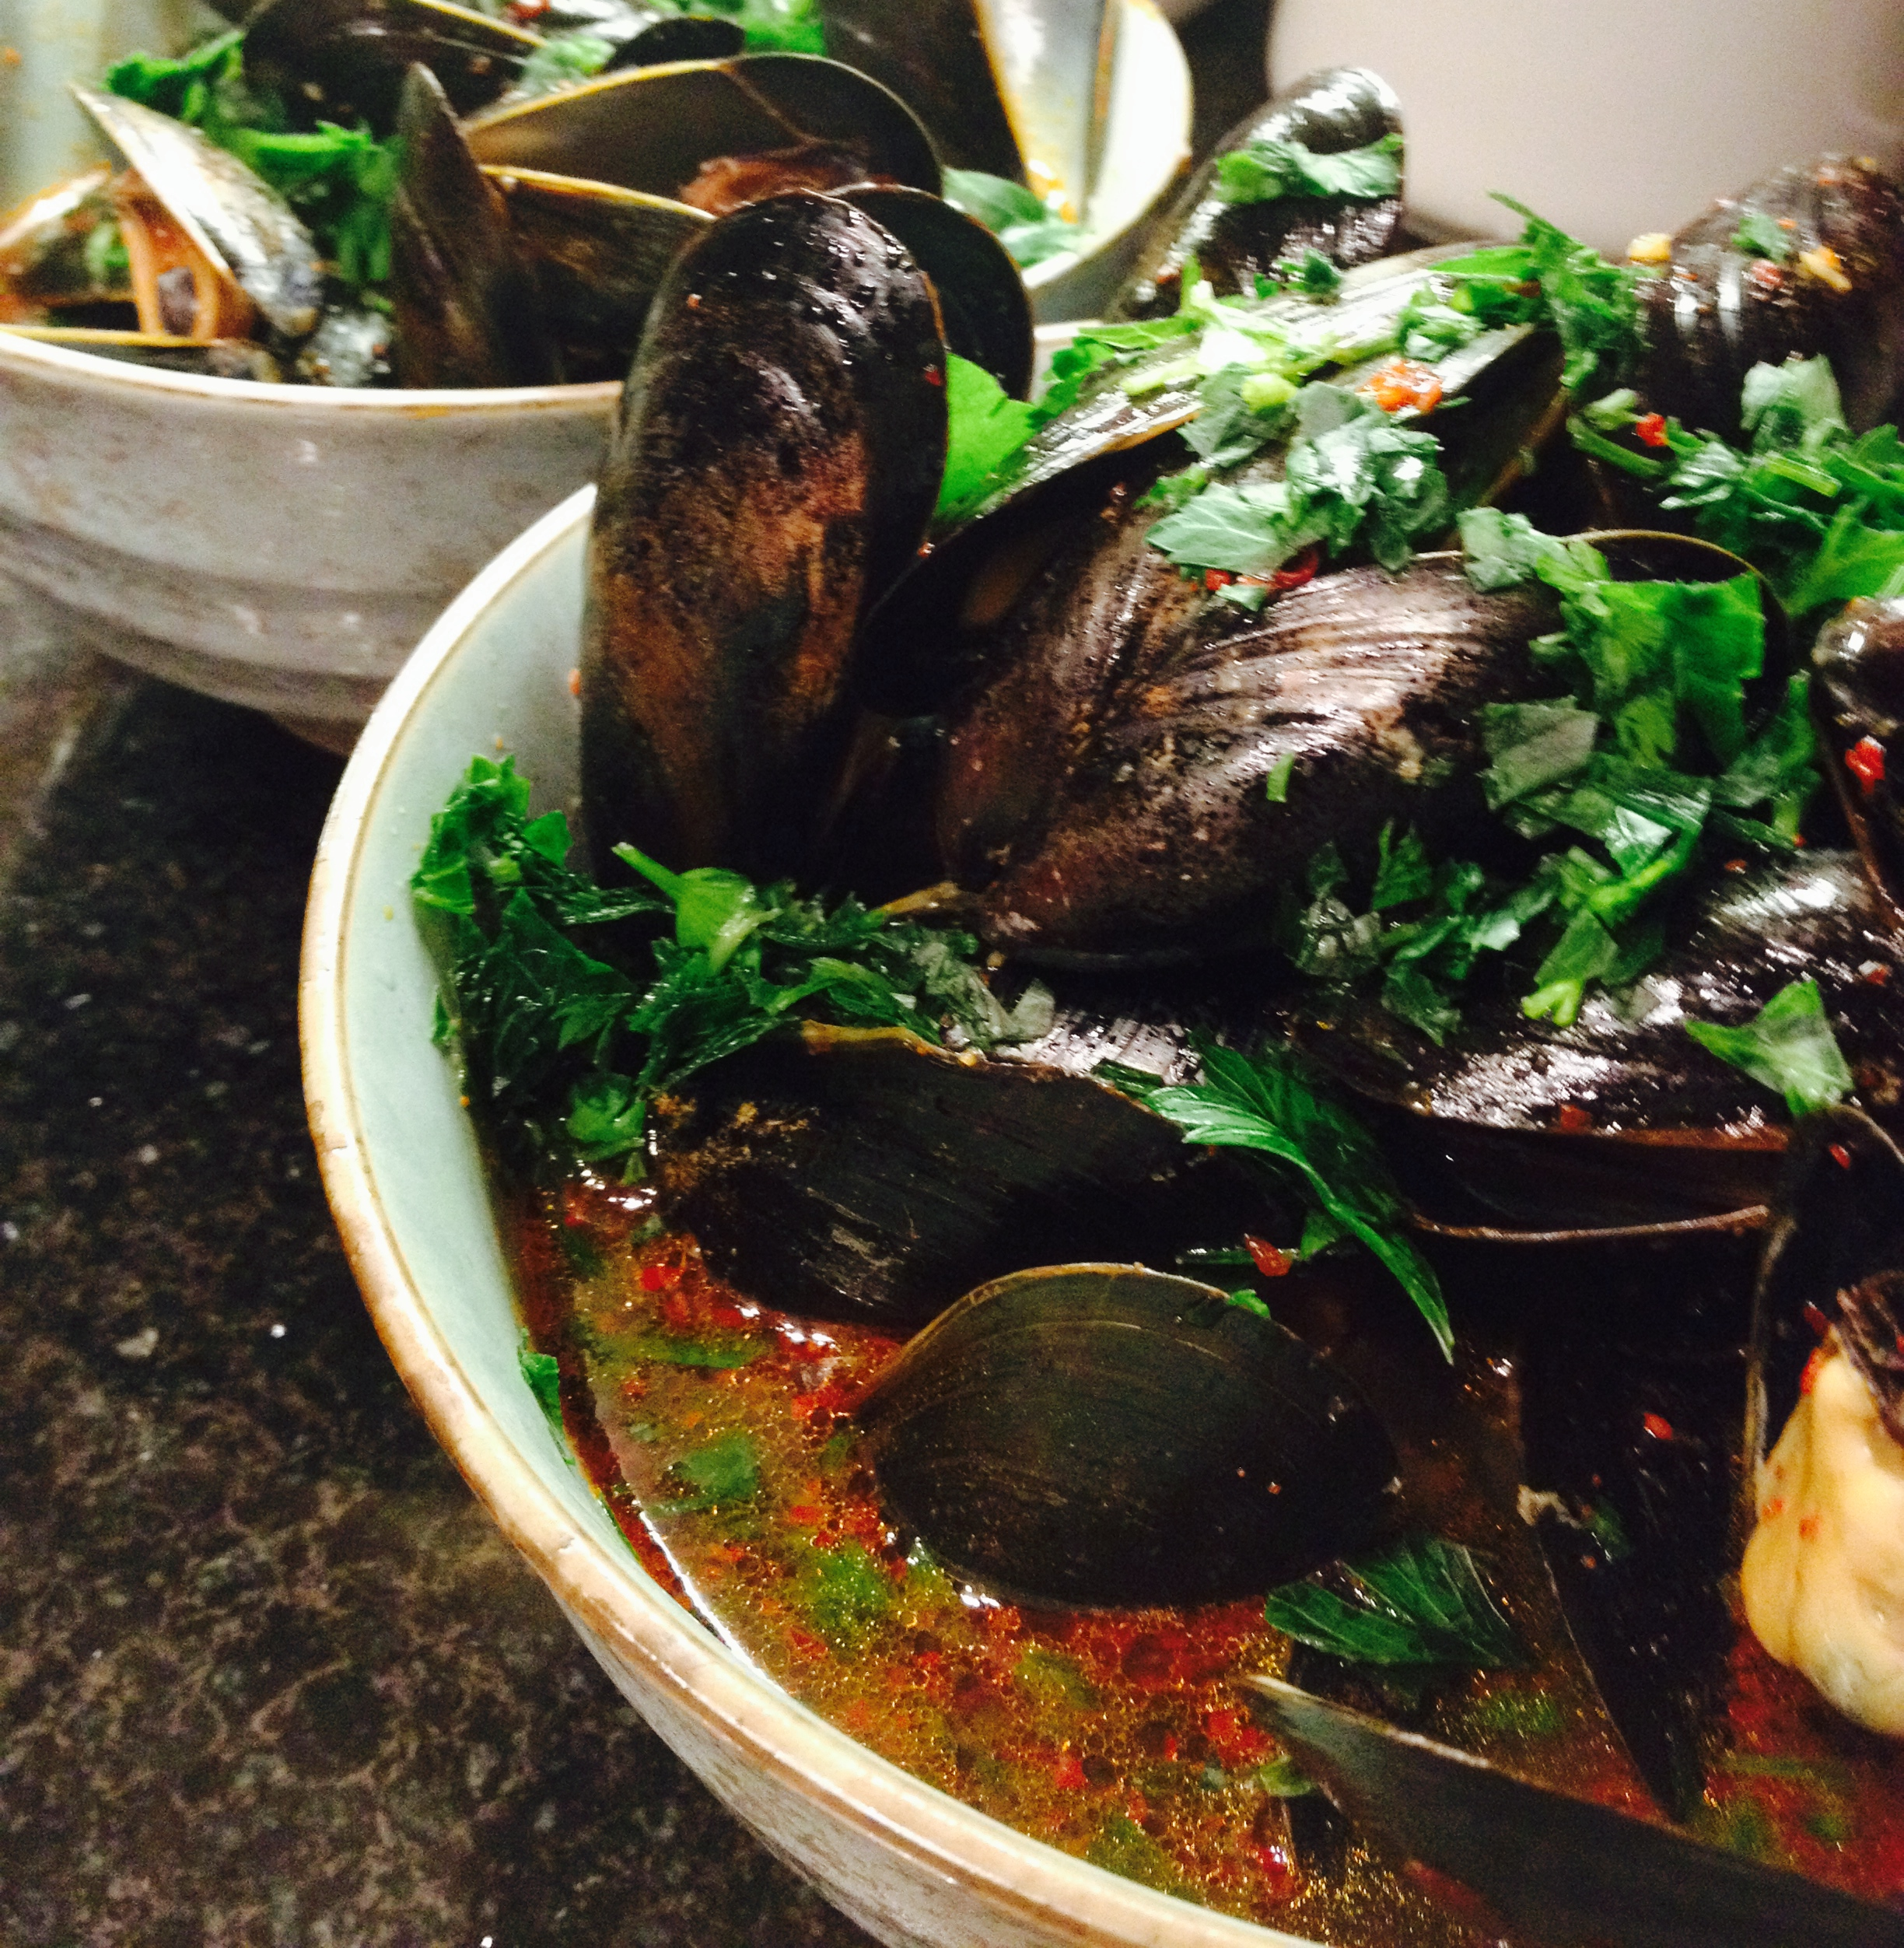 korean-style mussels in spicy broth.. :: by radish*rose